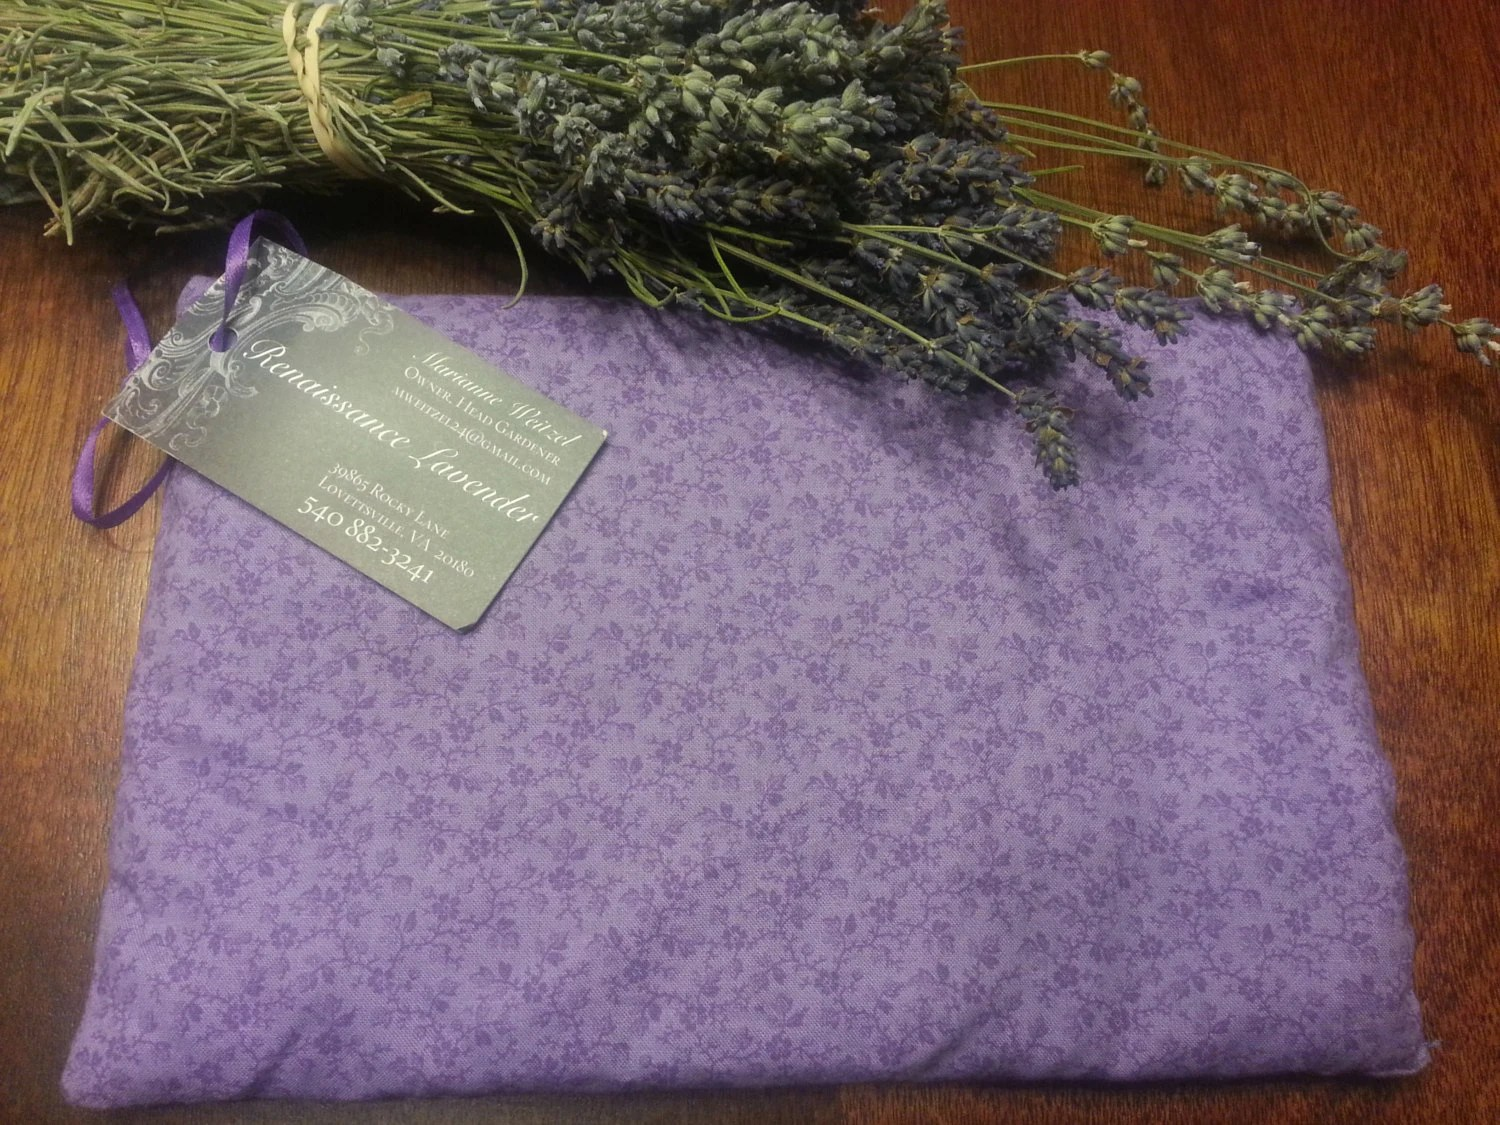 Lavender scented heated Warming Pillow heating pad for stress